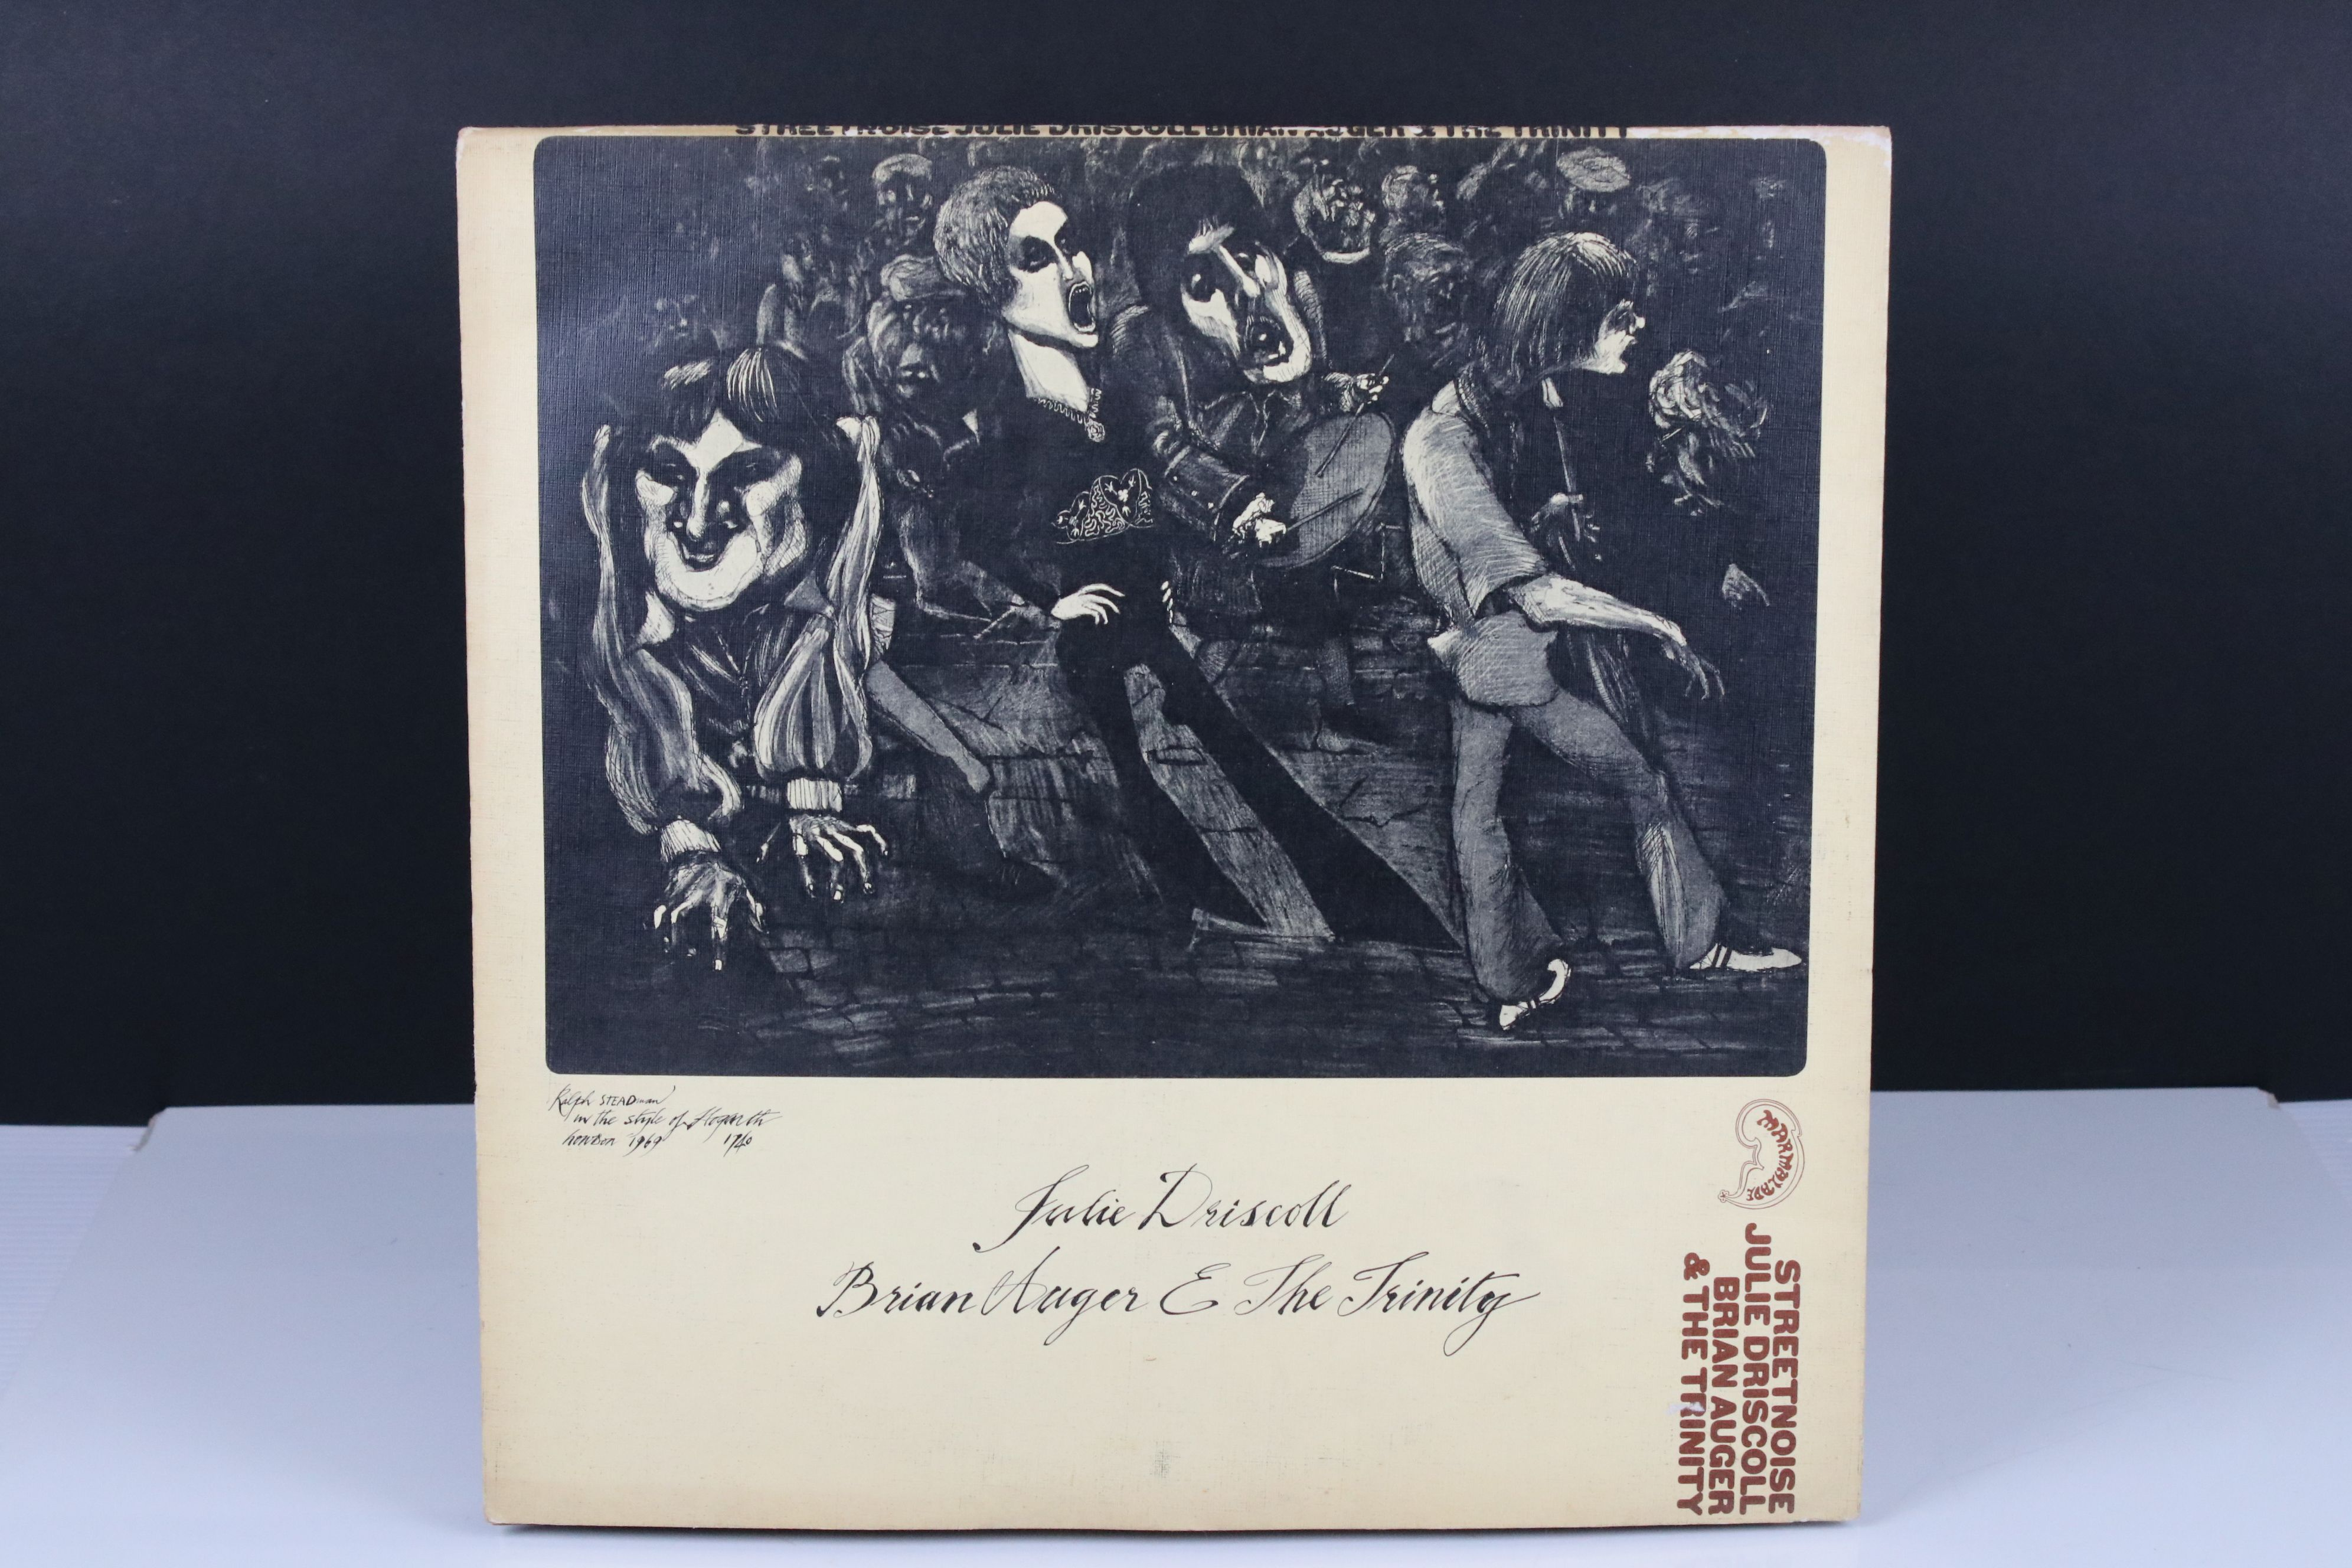 Vinyl - Julie Driscoll and Brian Auger Streetnoise LP on Marmalade 608005/6 Stereo, gatefold sleeve,